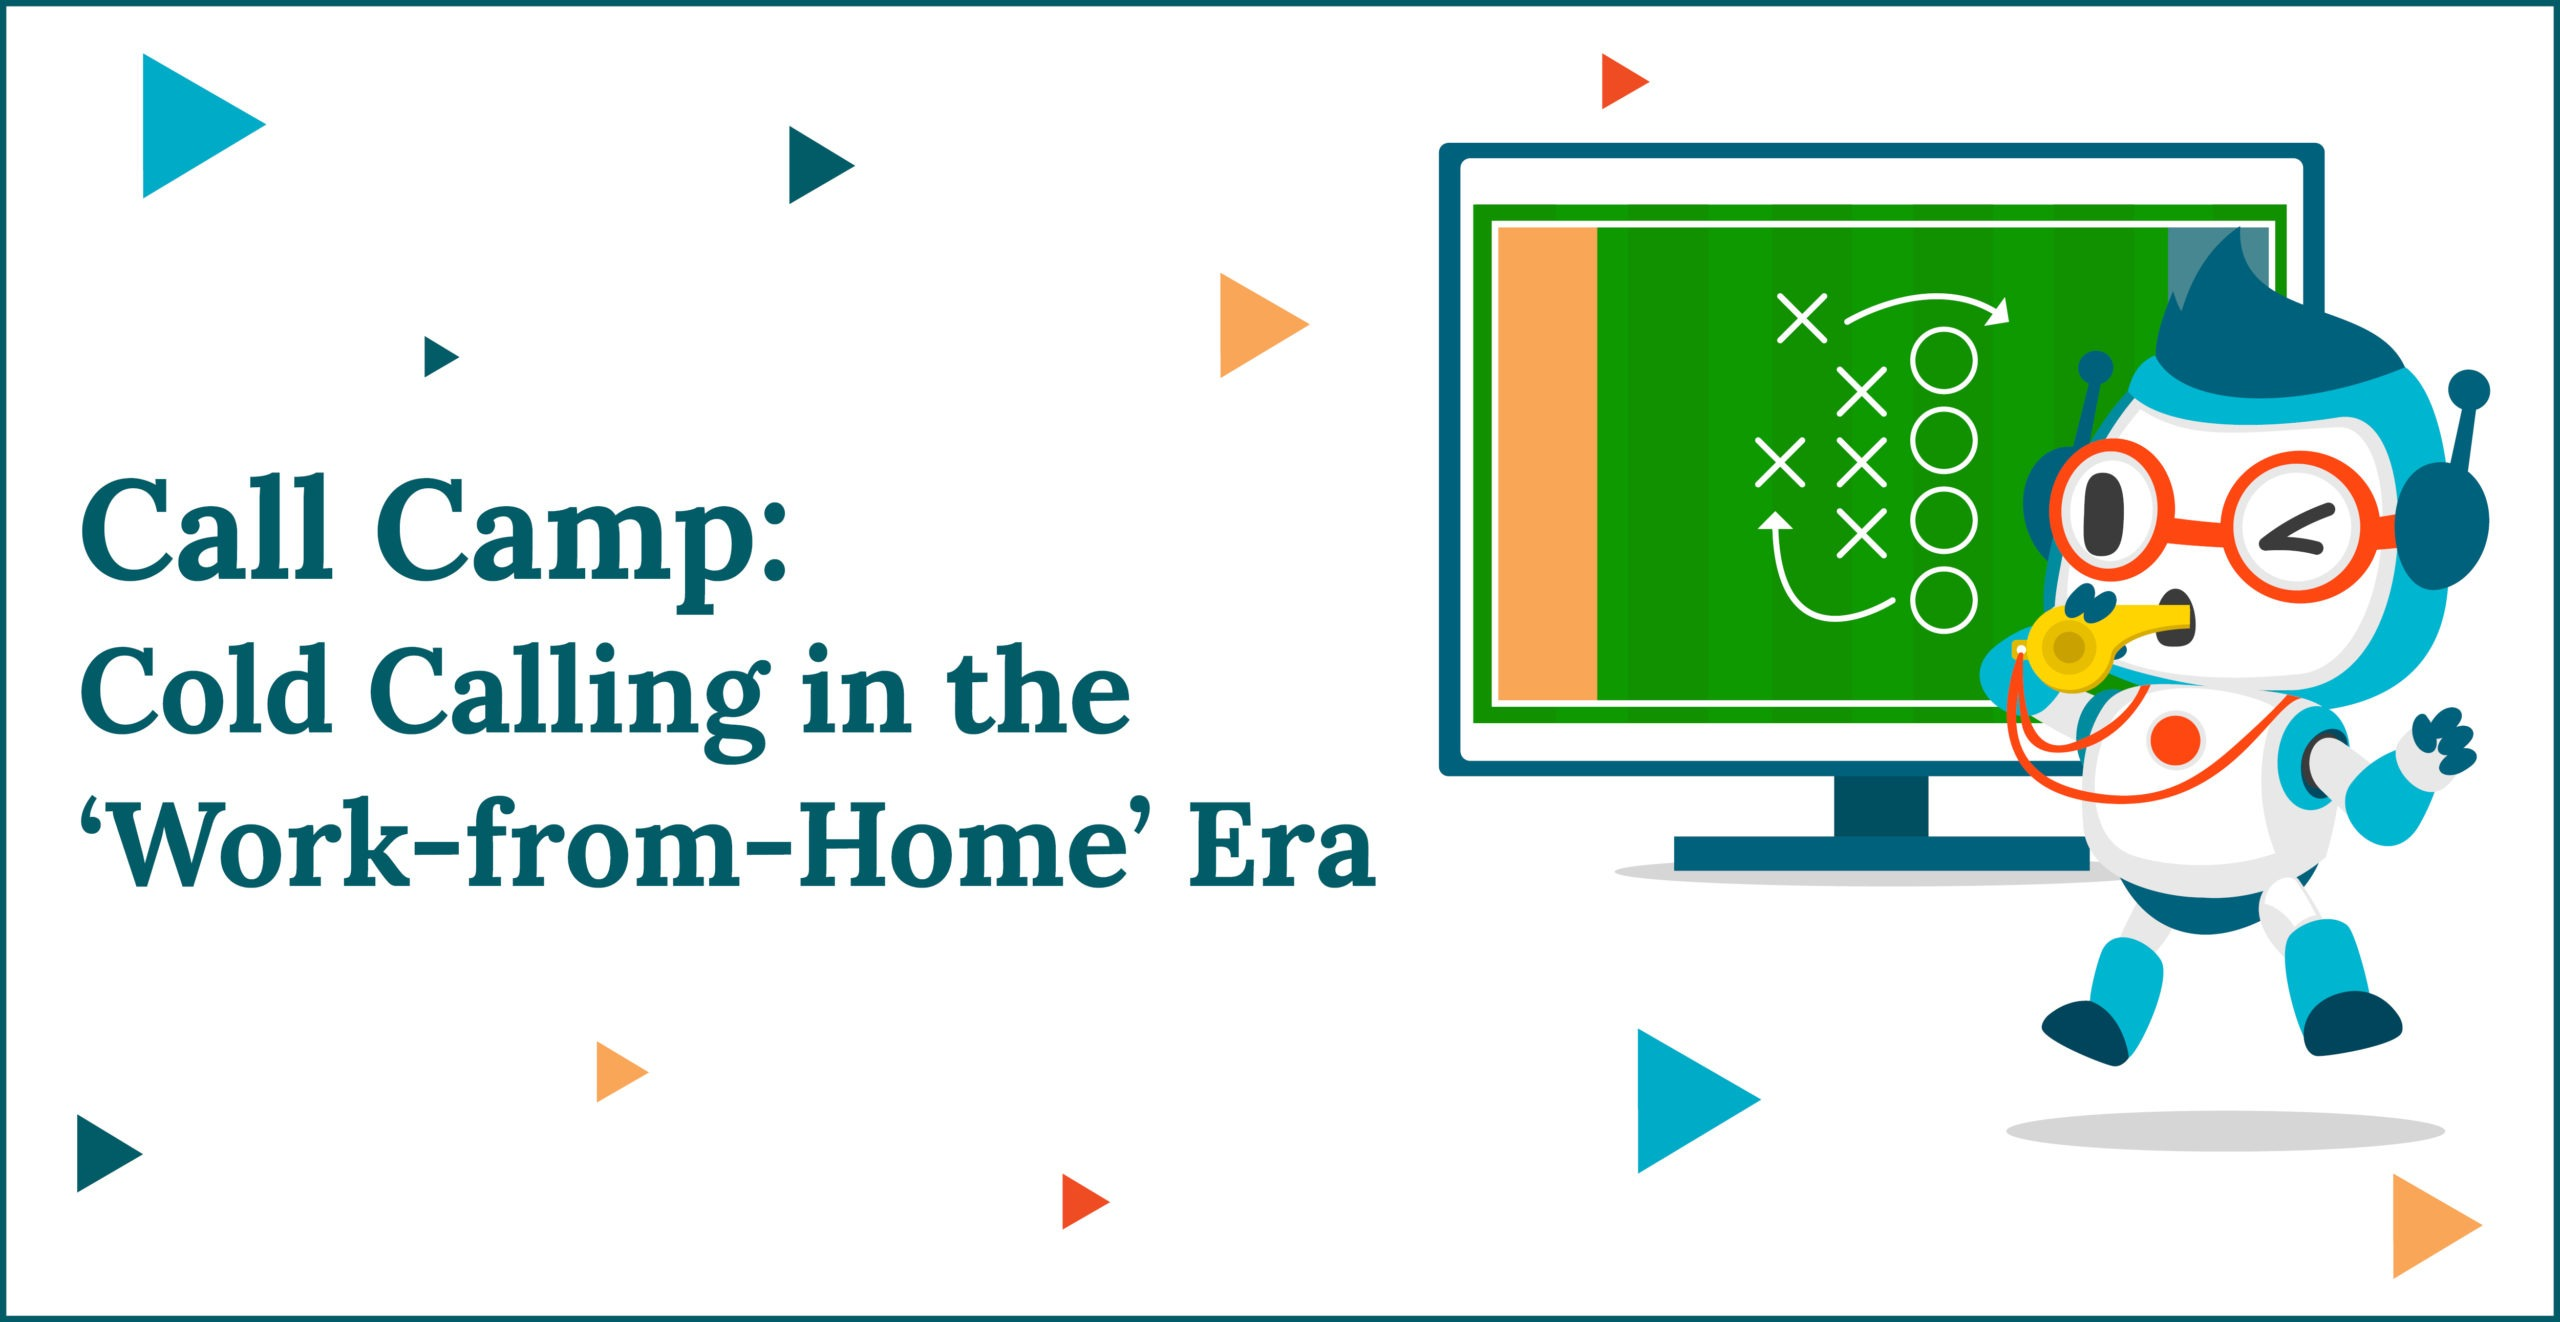 Call Camp: Cold Calling in the 'Work-from-Home' Era